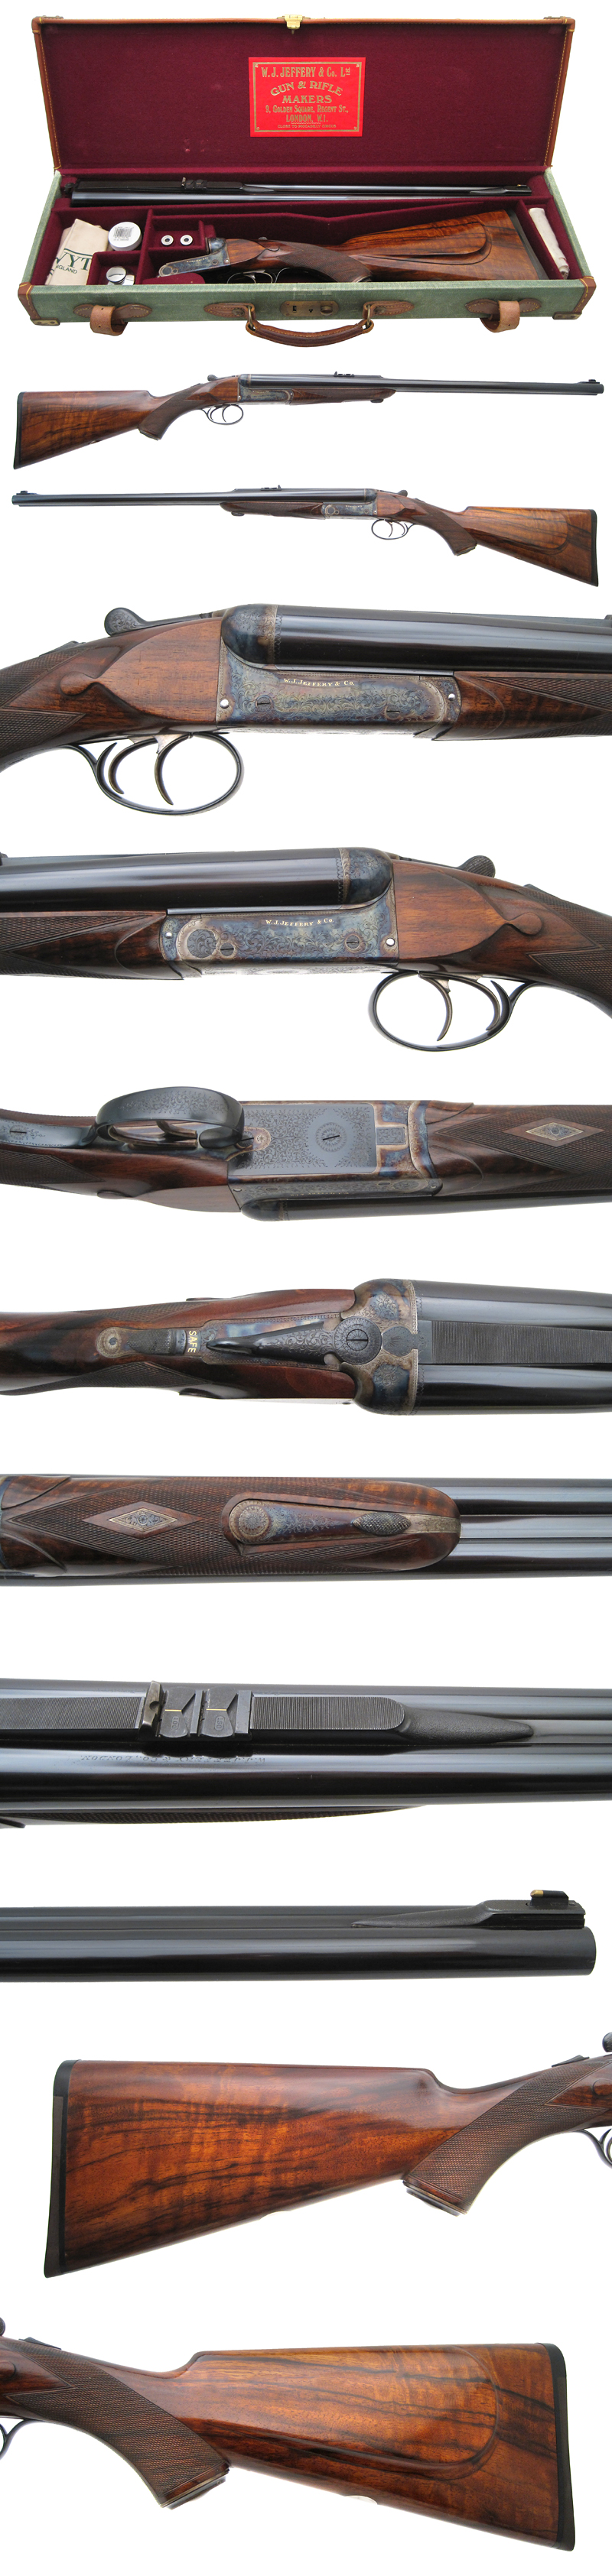 Griffin & Howe Rifle Details Page  W.J. Jeffery - Double Rifle - .500 NE caliber - $46,500.00   Classic double rifle in .500NE w/gorgeous case!